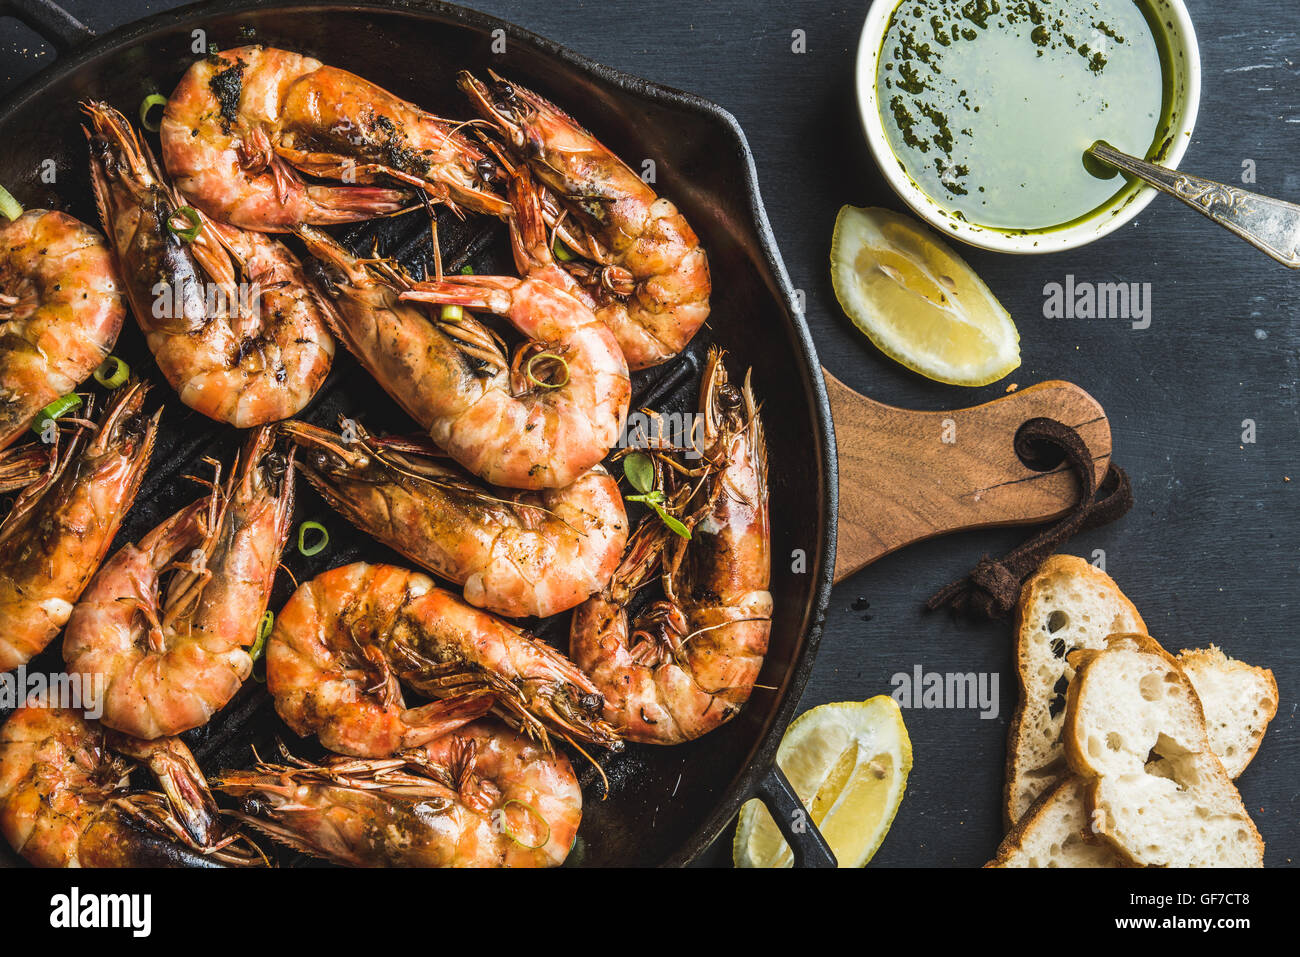 Roasted tiger prawns in iron grilling pan with fresh leek, lemon slices, bread and pesto sauce over black background - Stock Image